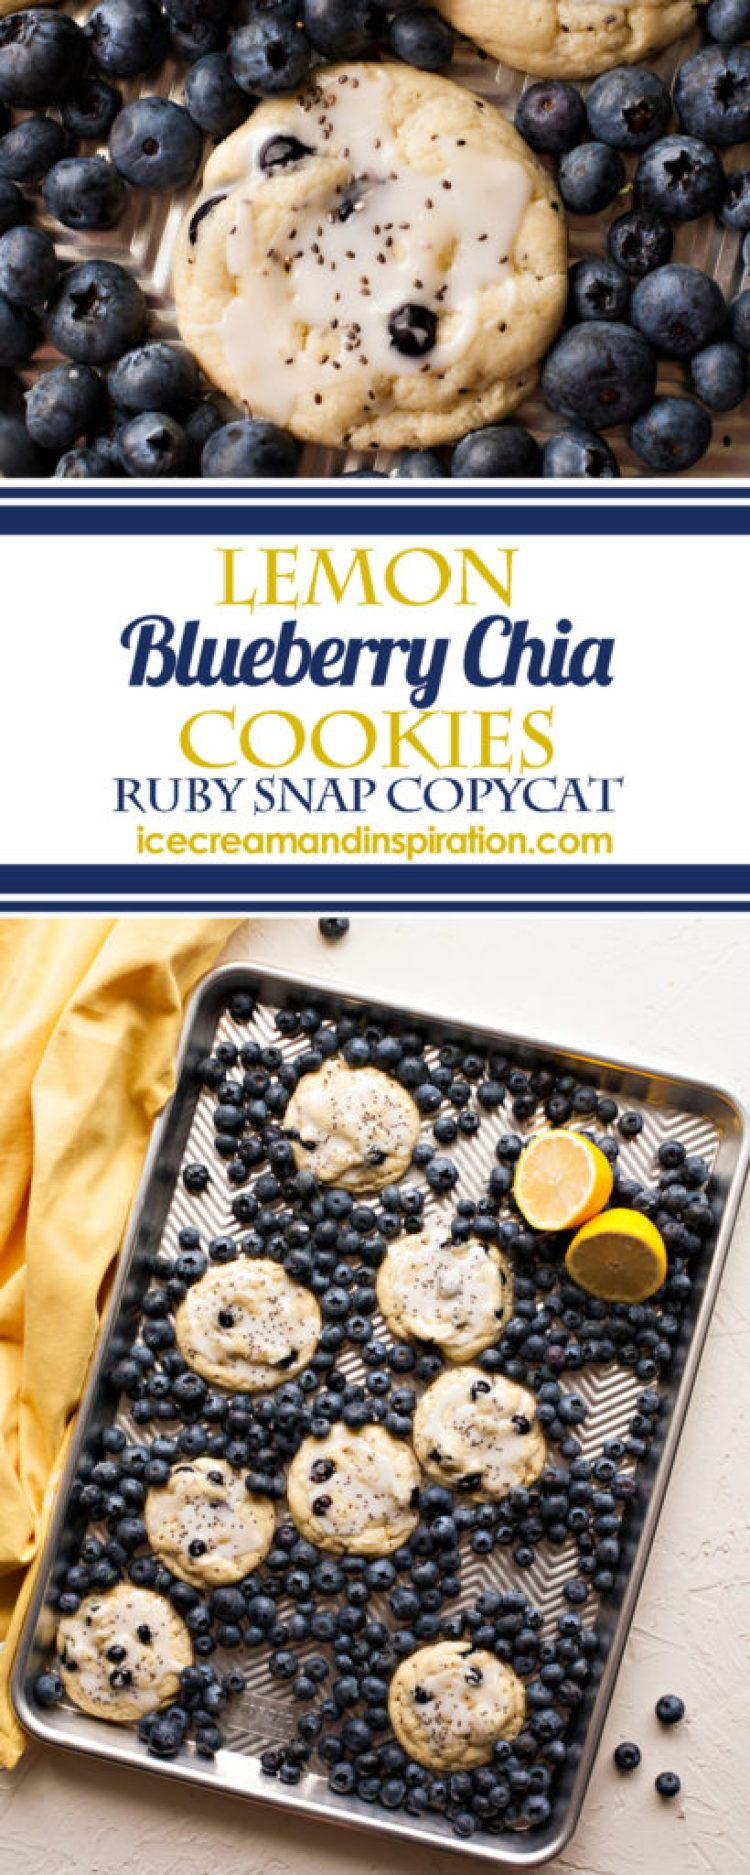 Luscious super soft lemon cookies packed with fresh blueberries and chia seeds make these Lemon Blueberry Chia Cookies the best sweets on the block!